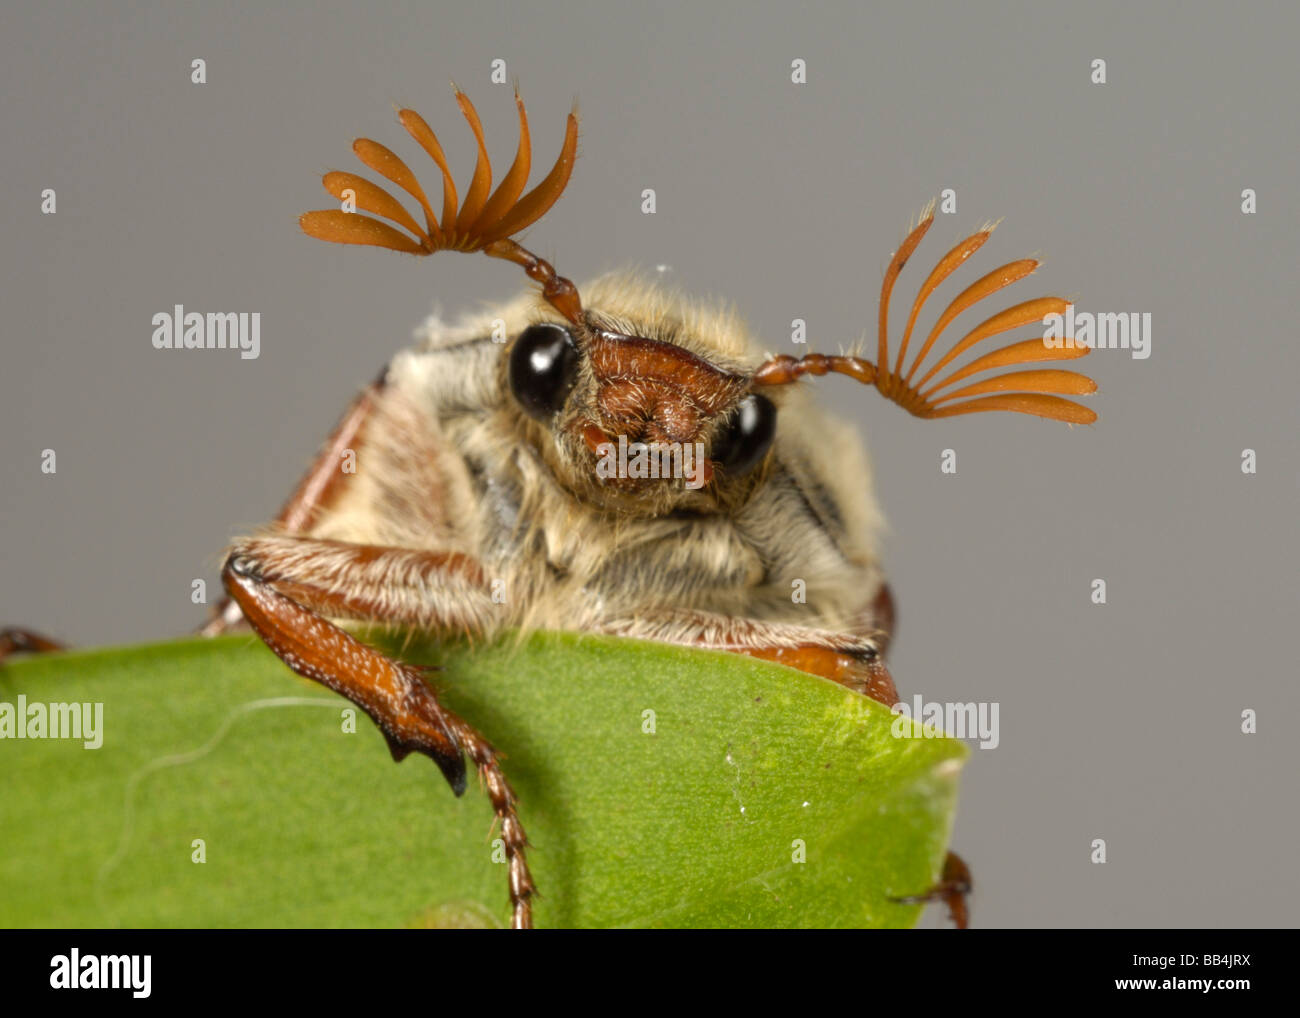 Head and antennae of an adult cockchafer Melolontha melolontha or may bug on a leaf - Stock Image